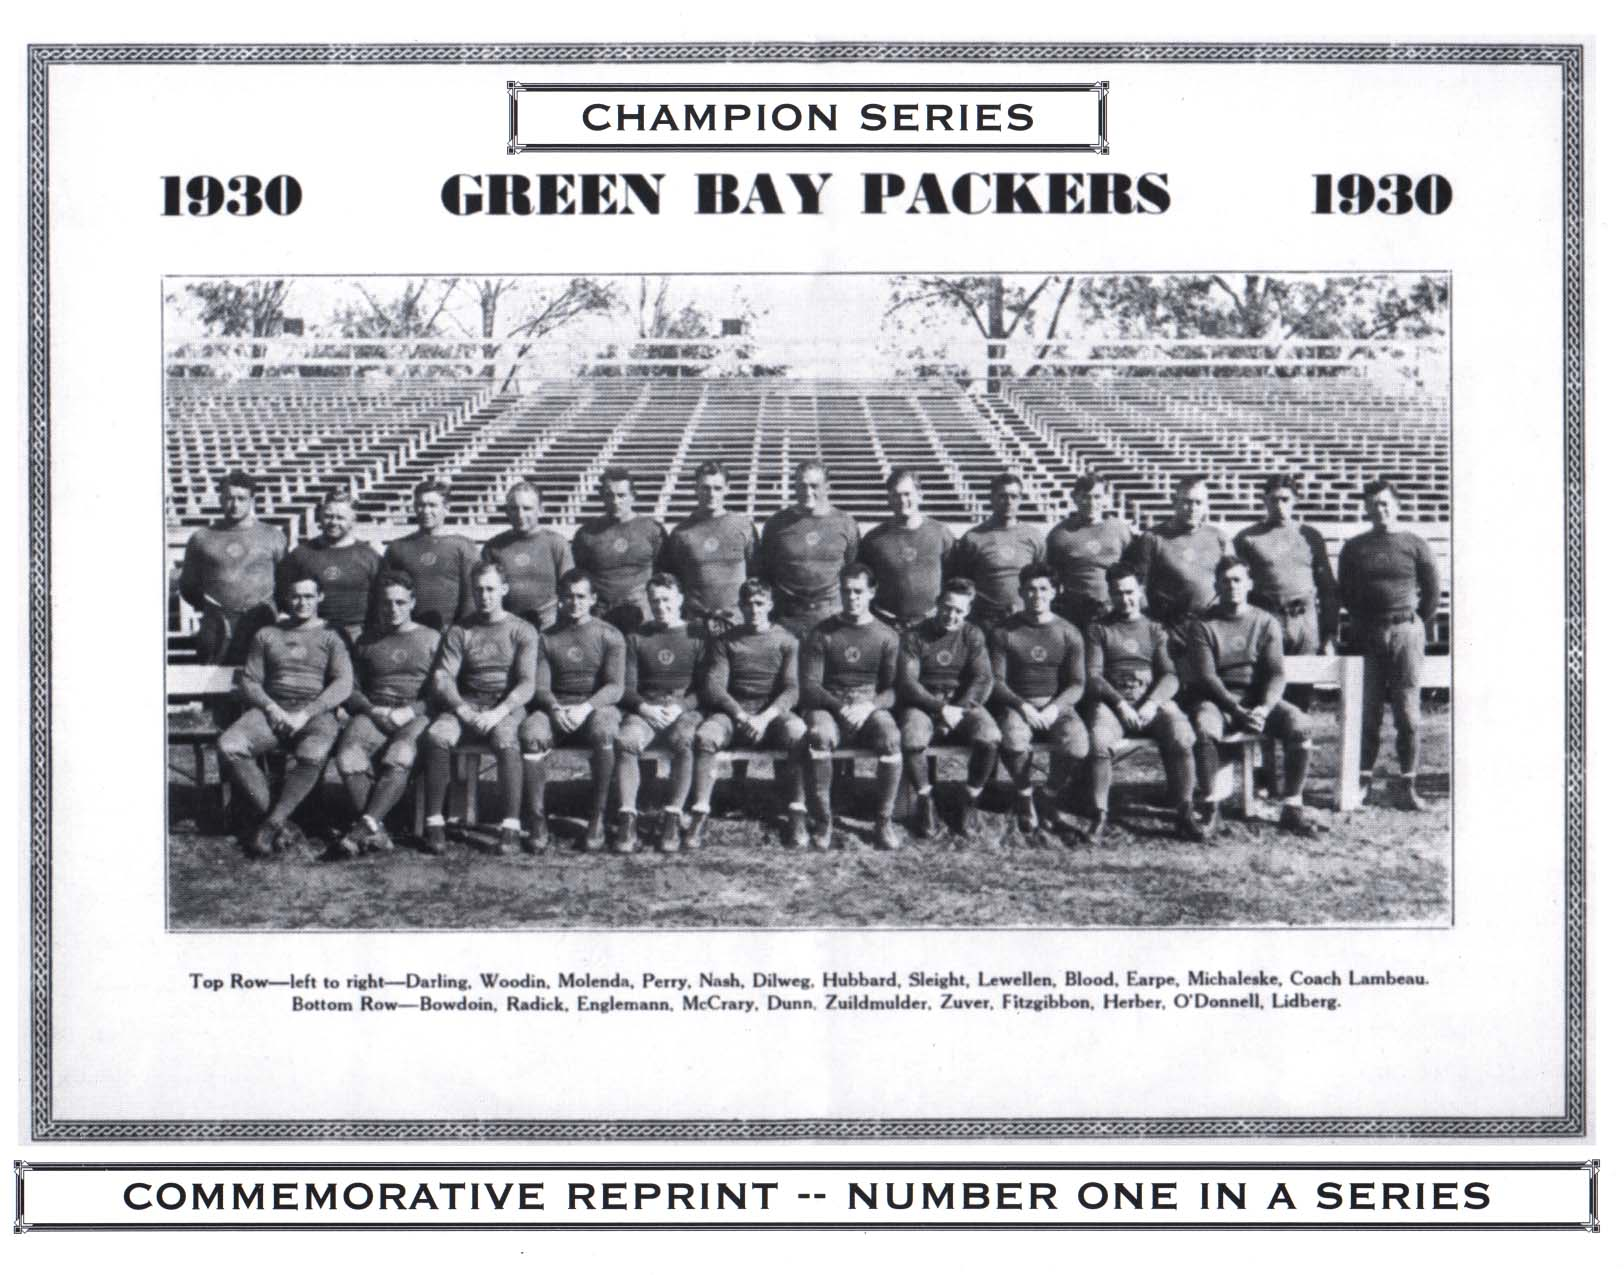 La storia del football americano - 1930: Green Bay Packers vittoriosi